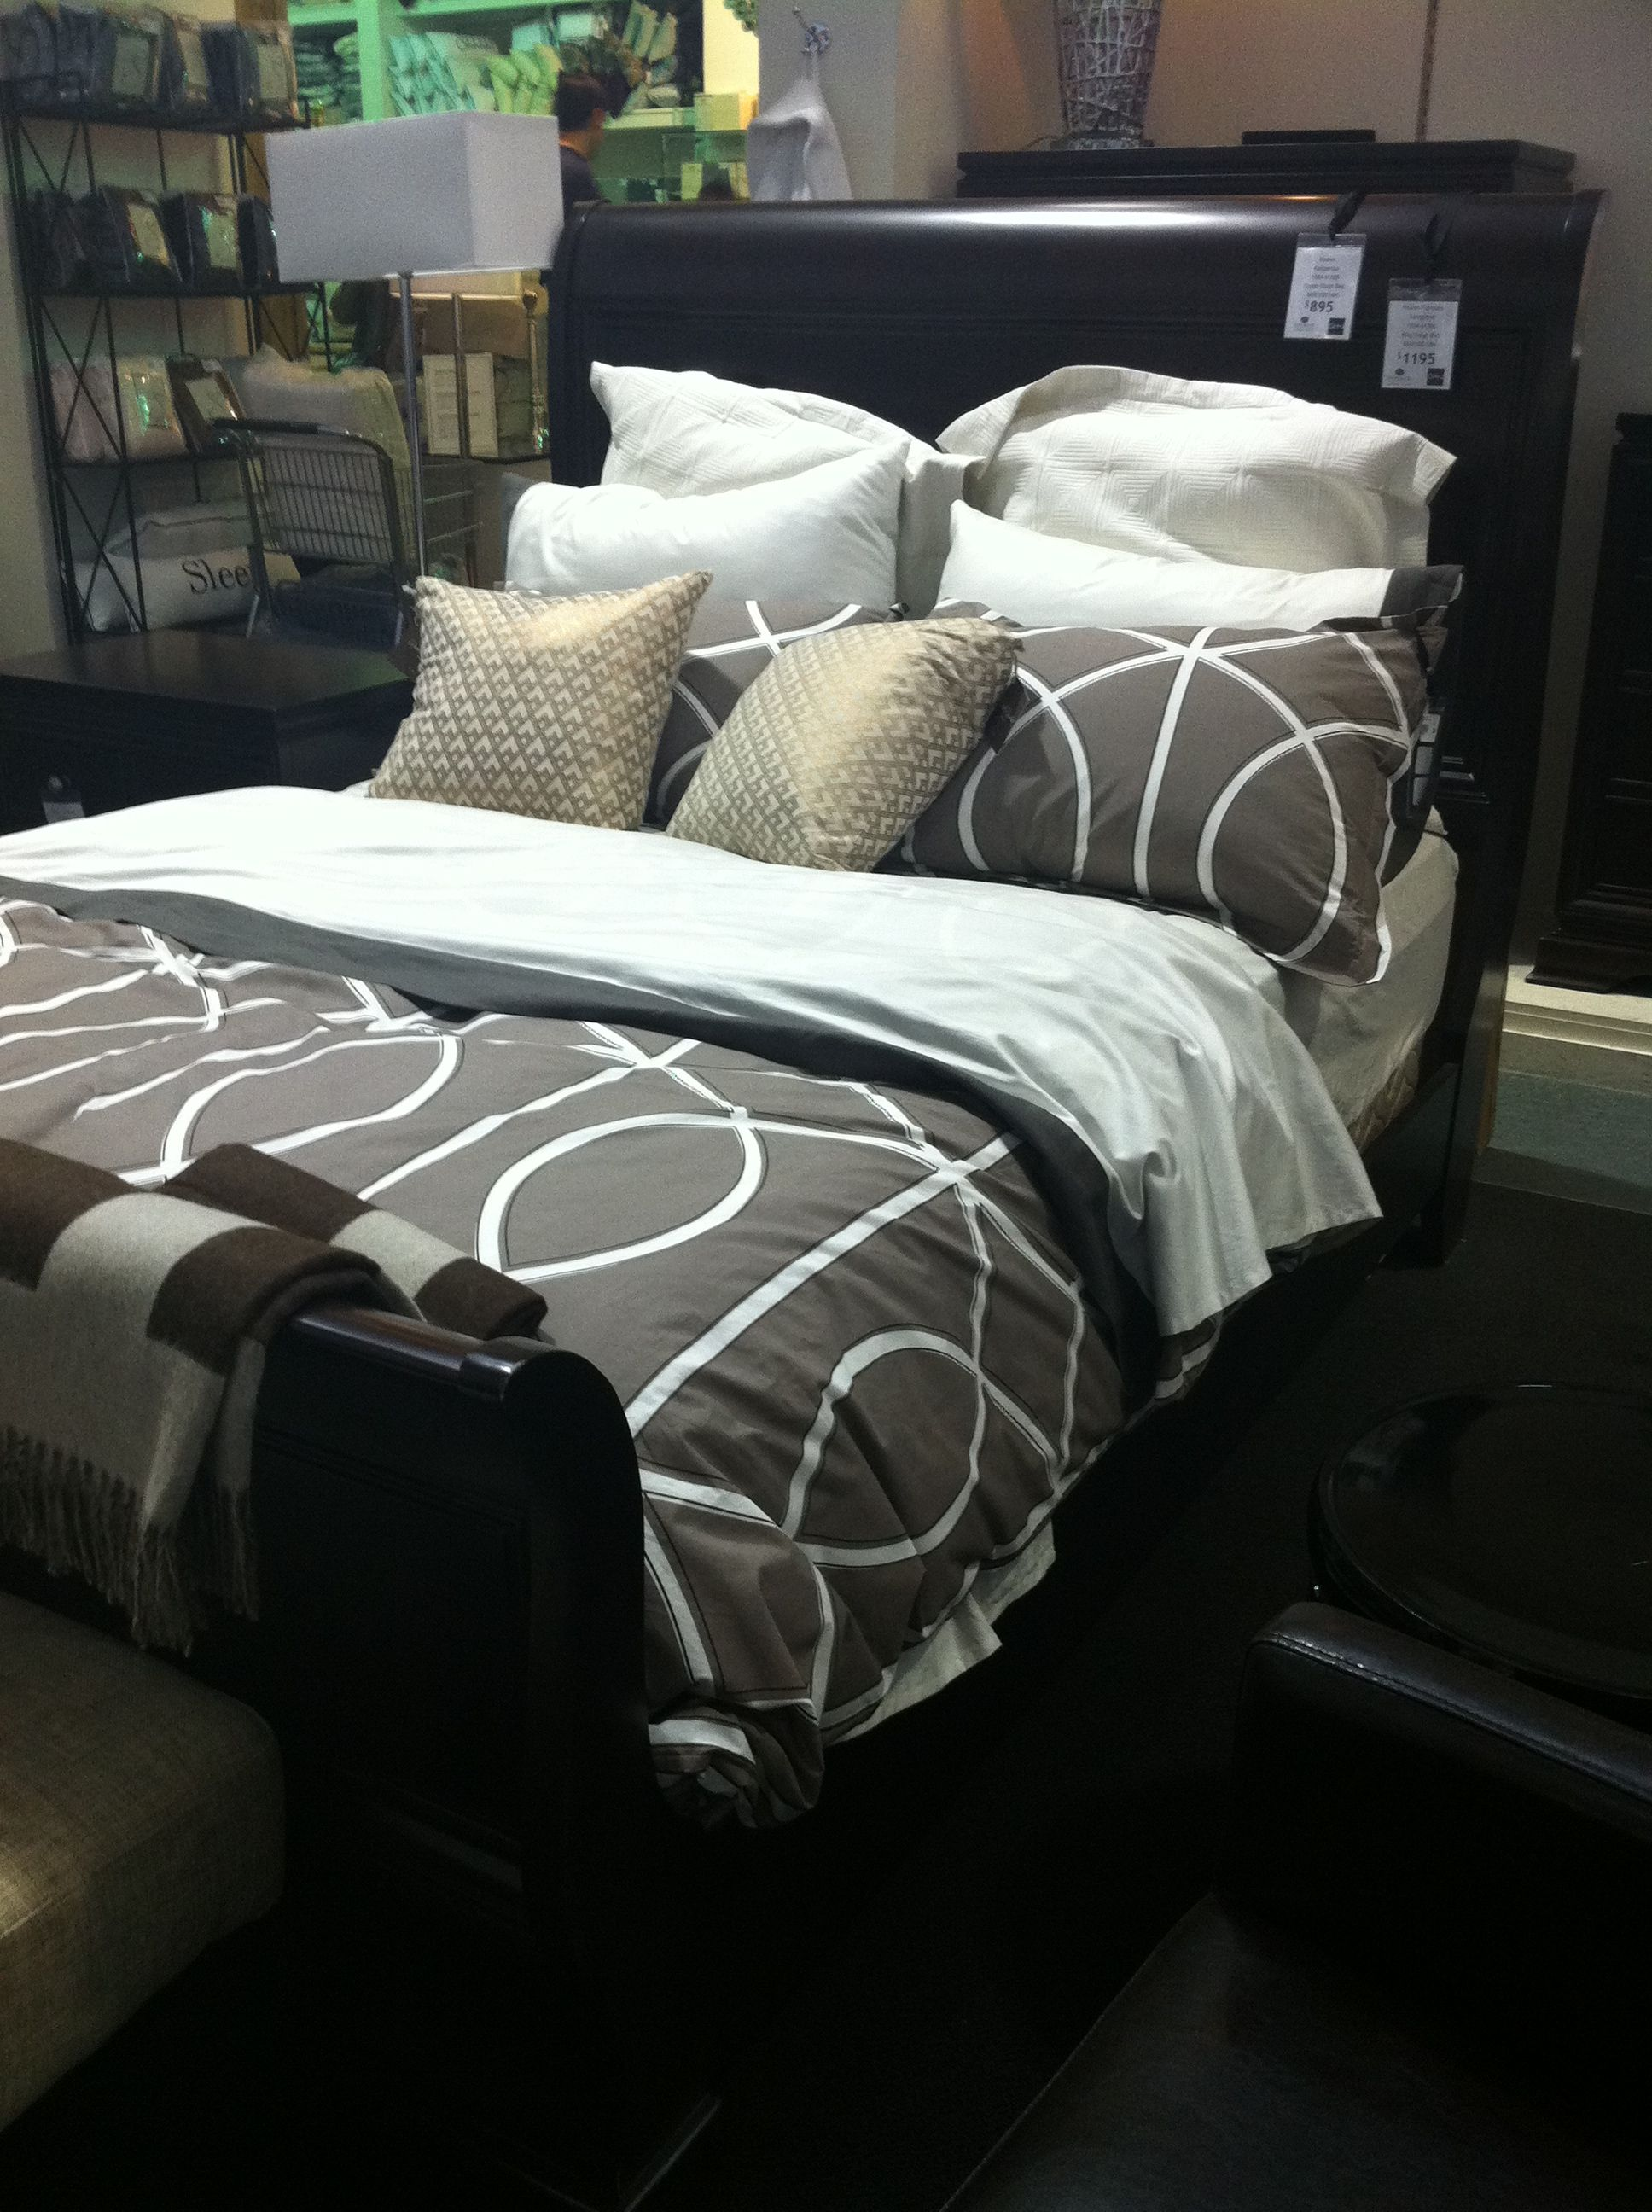 Interior Sleigh Bed Bedding sleigh bed gray grey cream white dark wood bedding guest room room